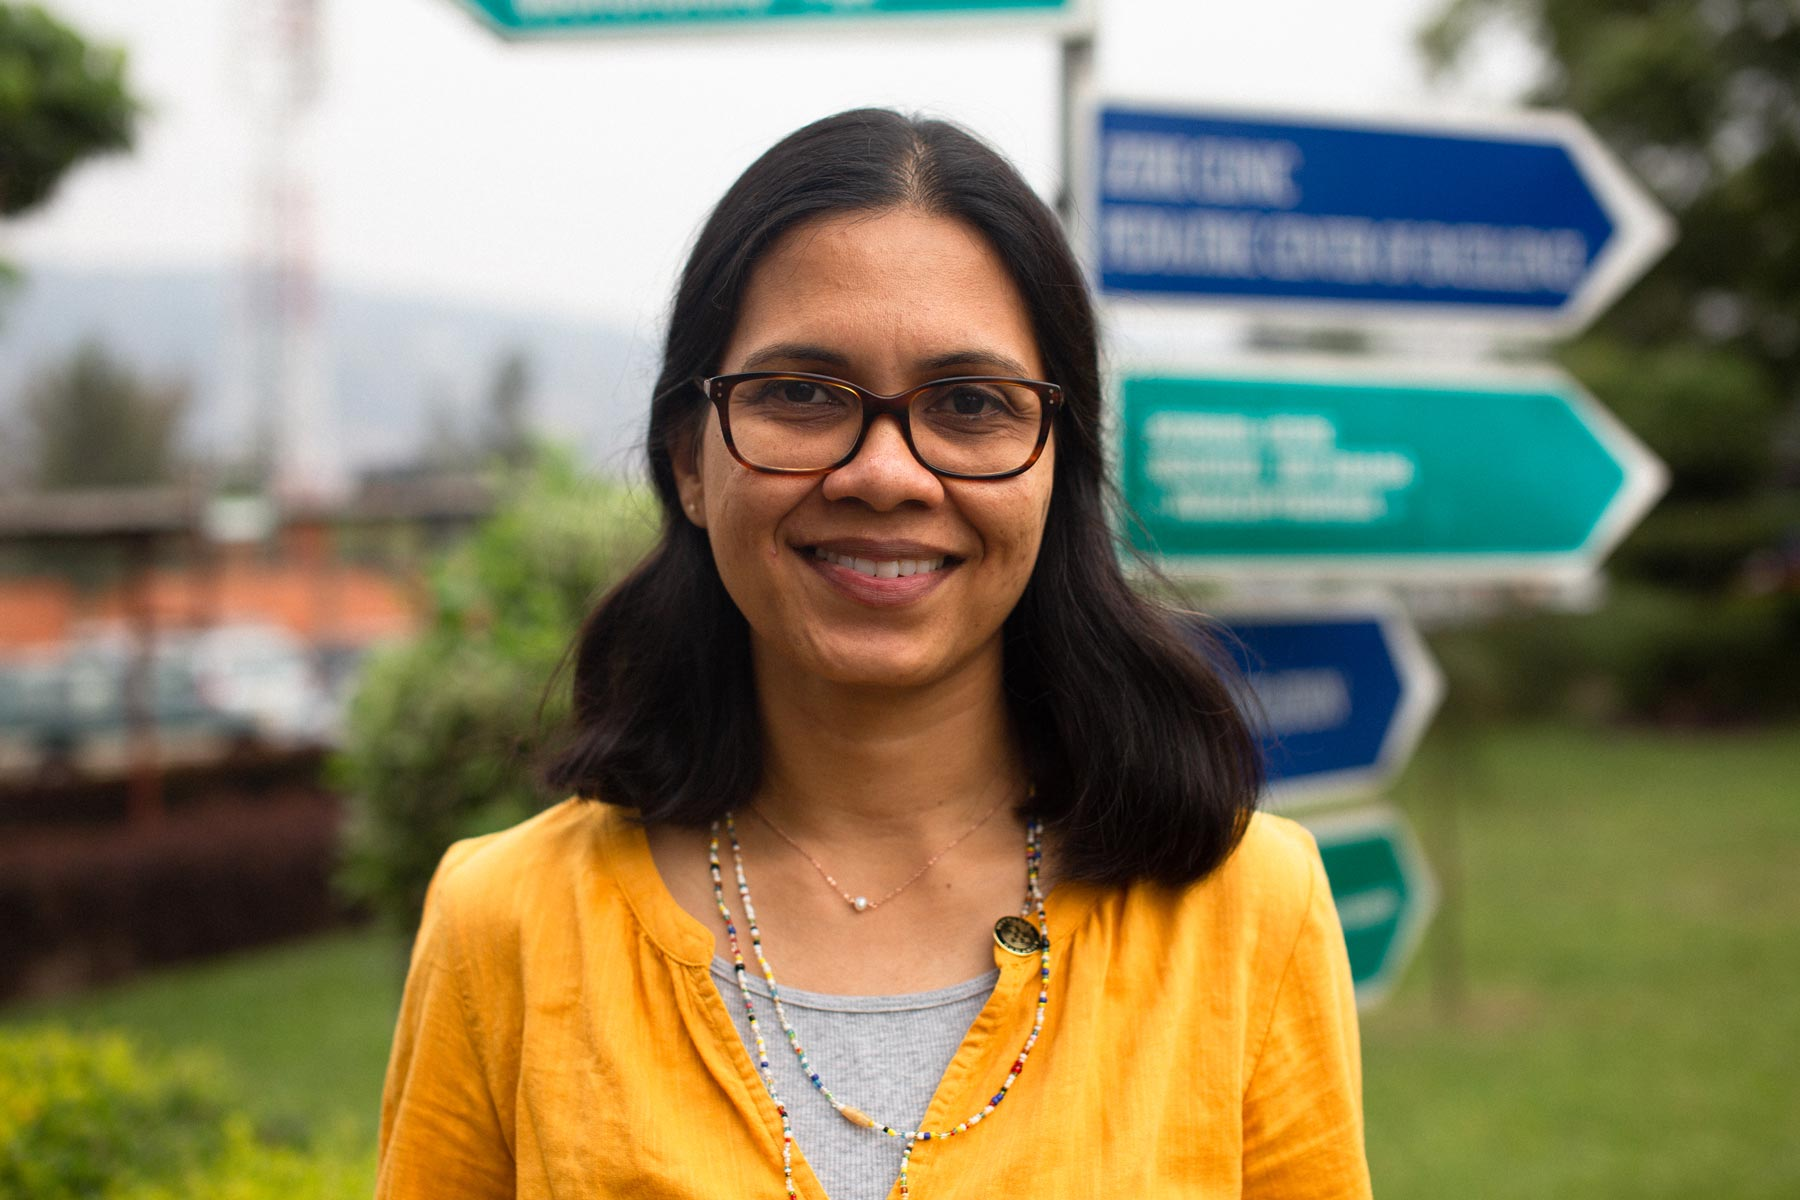 Dr. Shenoi smiles in front of a signpost outside.